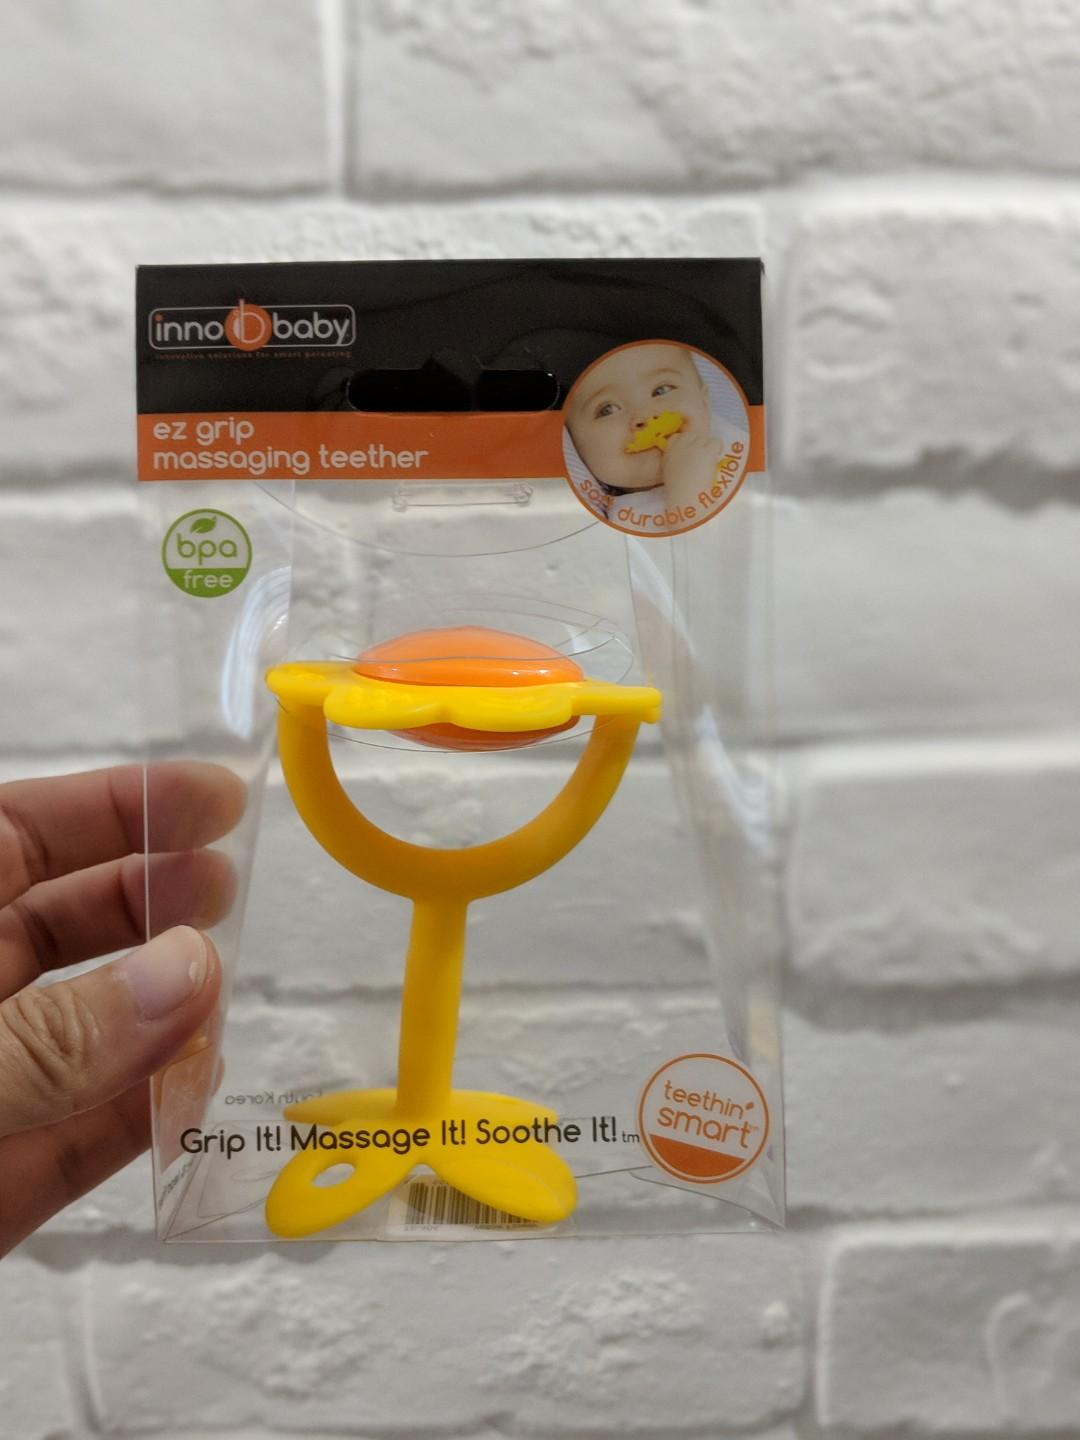 Innobaby teether